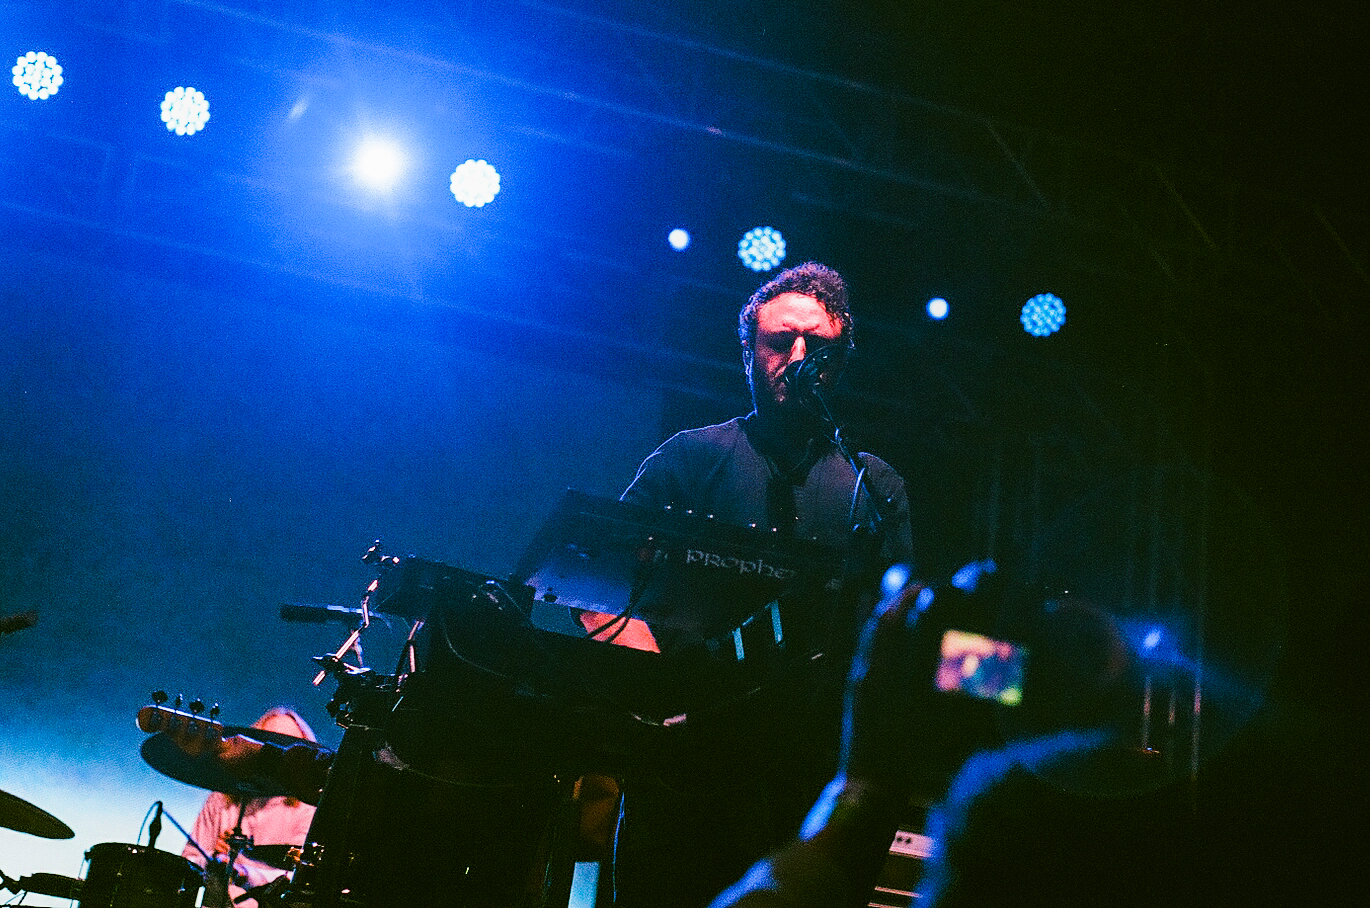 local-natives-atmf-2018-35mm-3.jpg